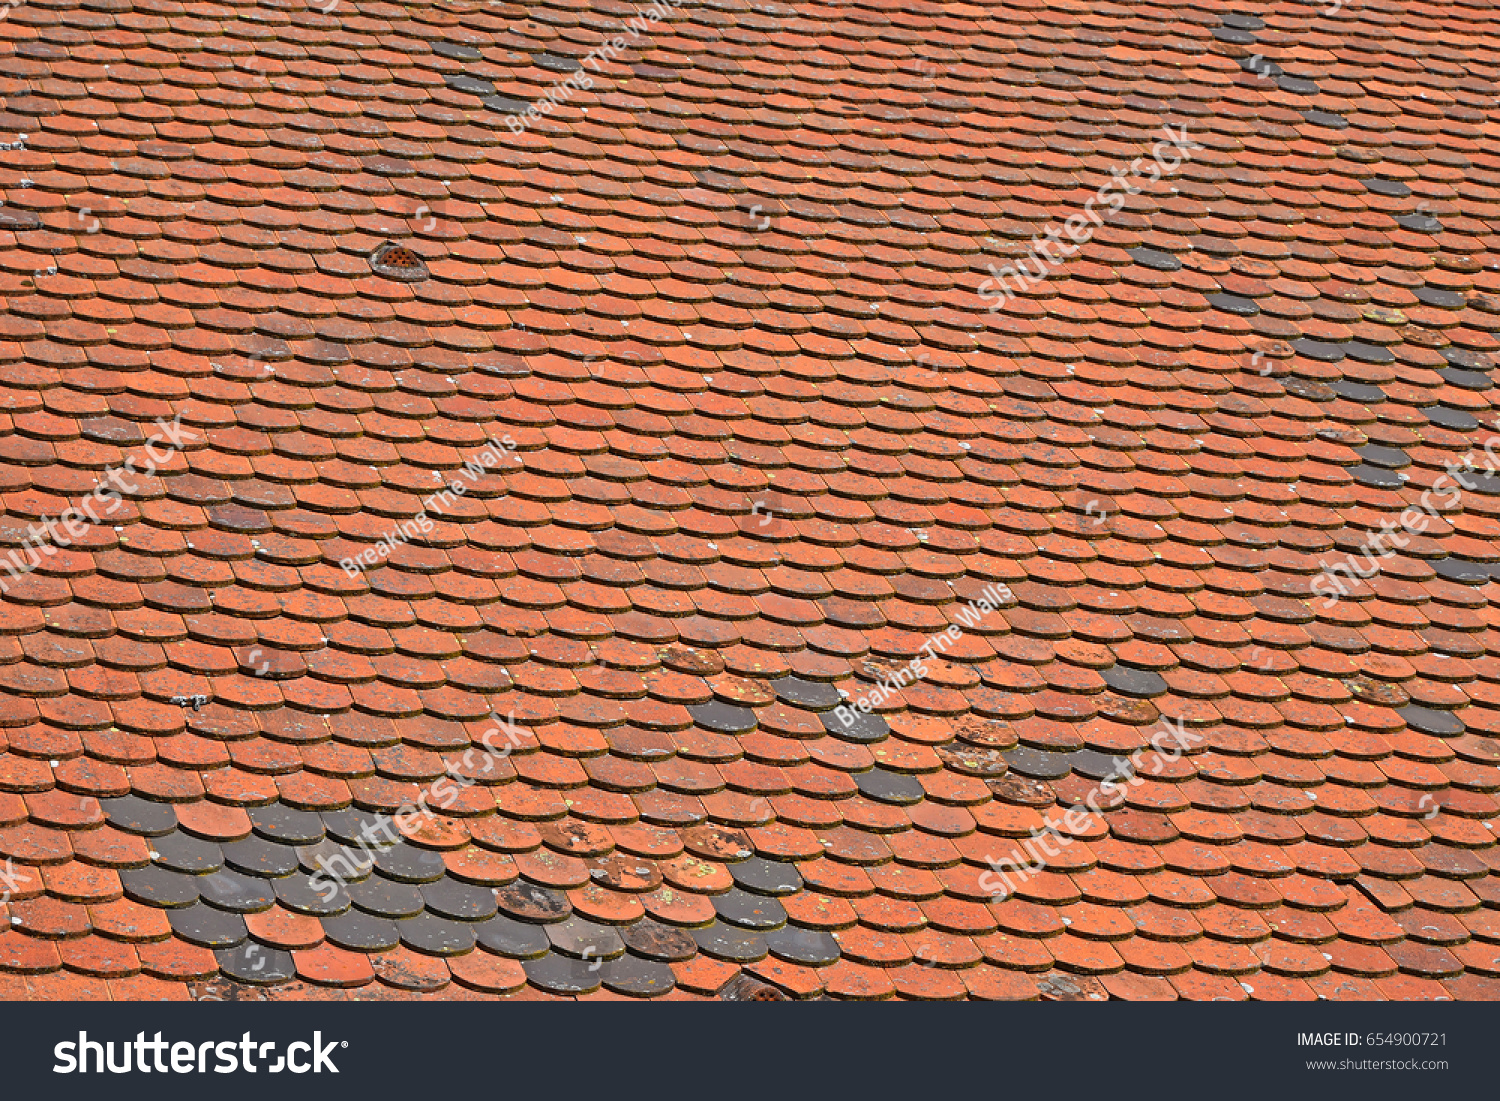 Old Weathered Vintage Traditional Red Brown Ceramic Roof Tiles